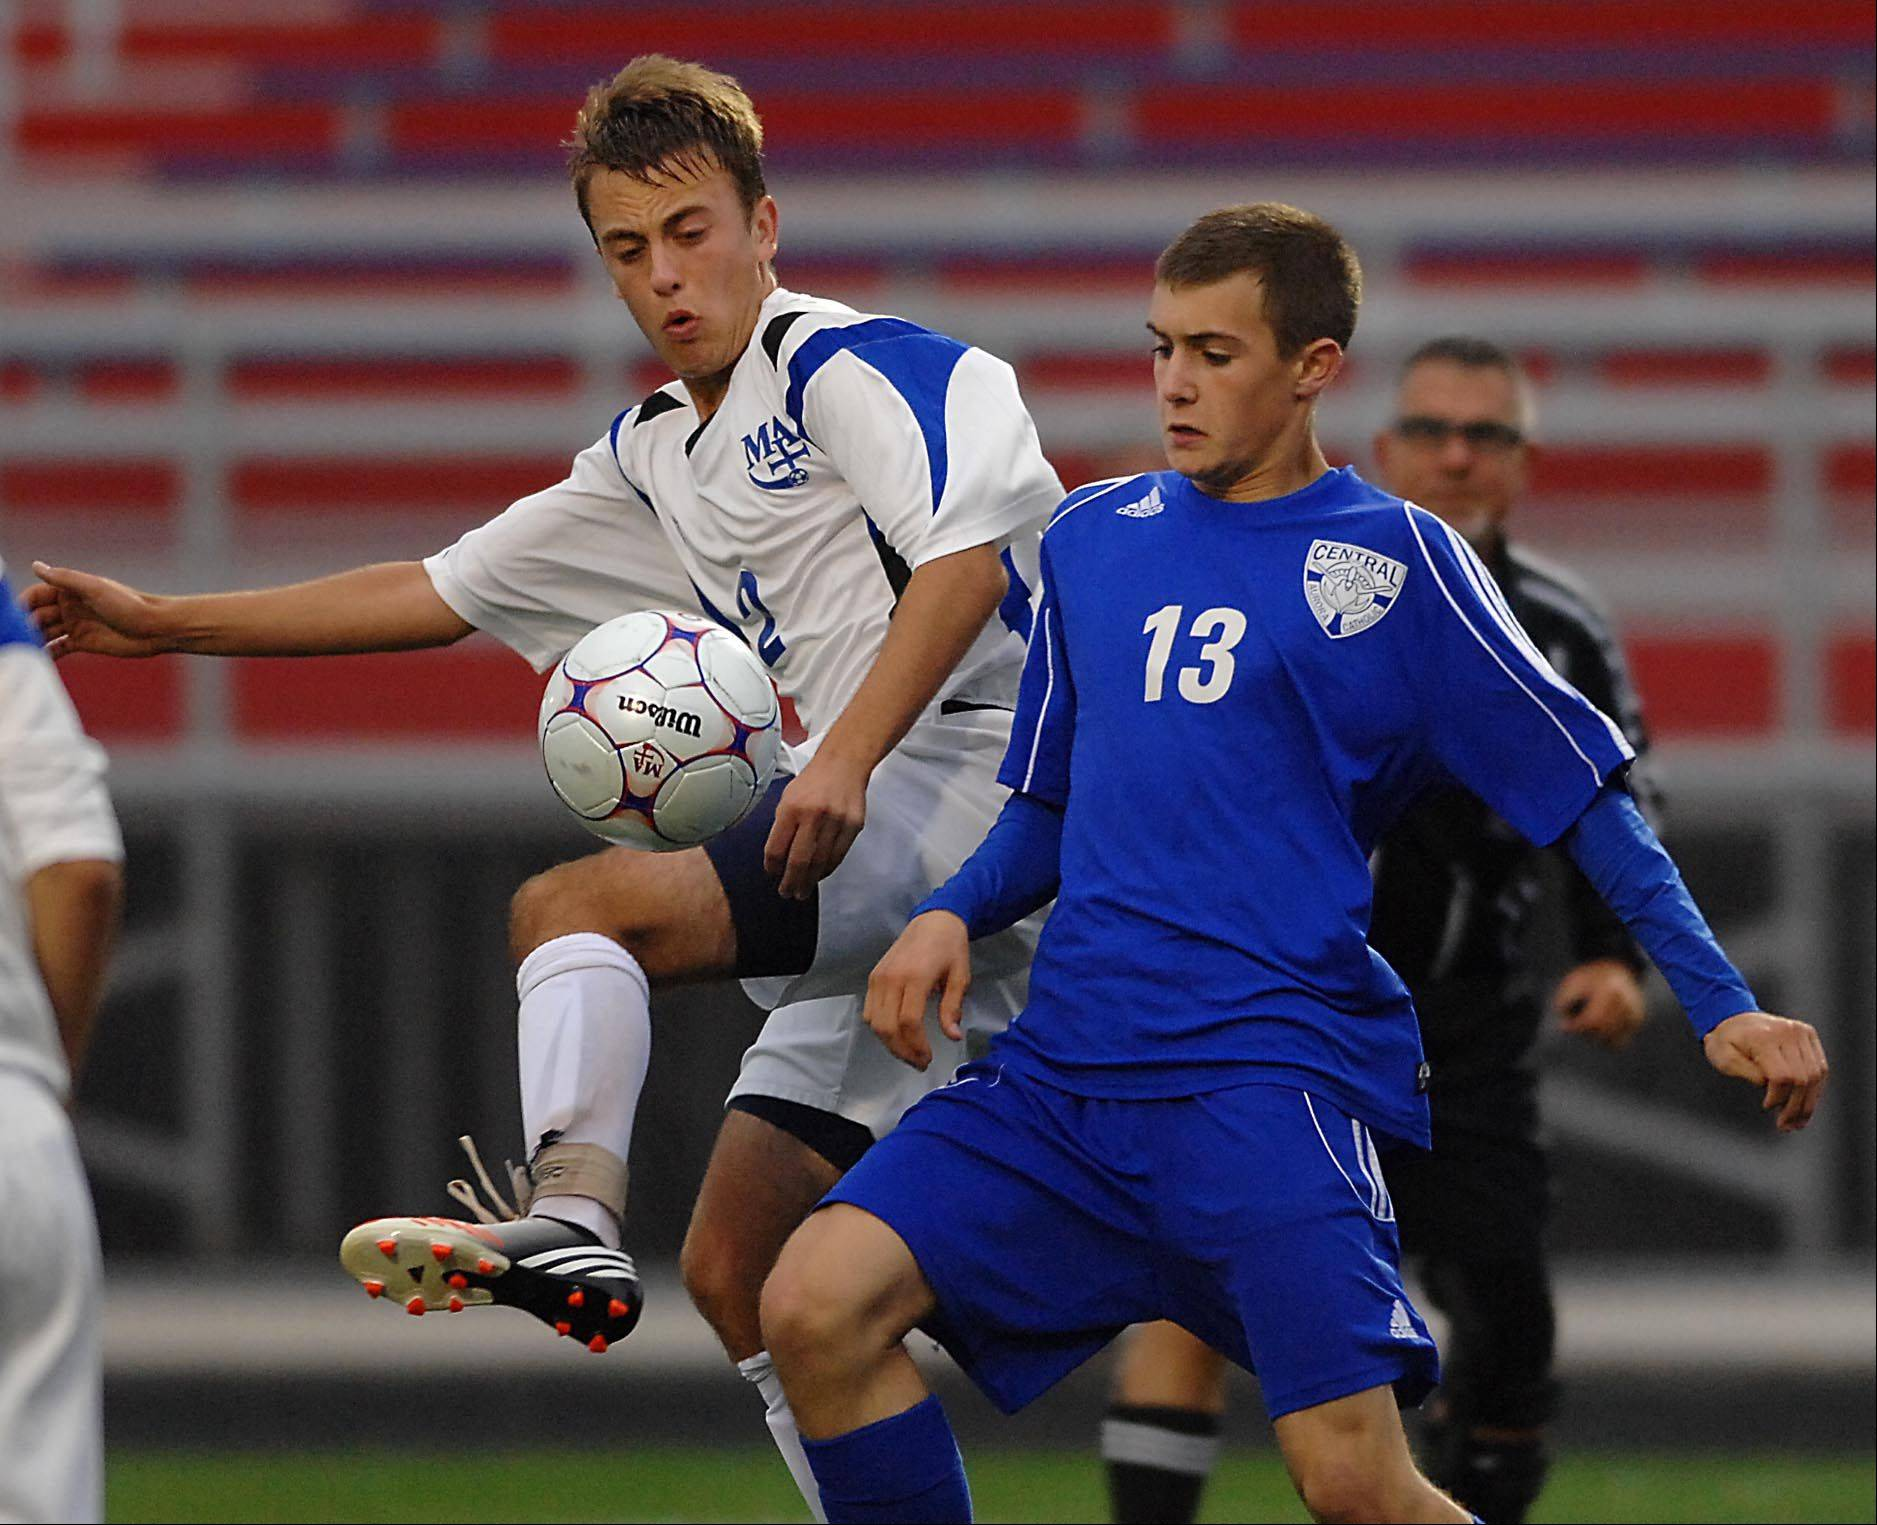 Marmion's Mick Wangler and Aurora Central Catholic's David Petesch, right, battle Thursday in Aurora.